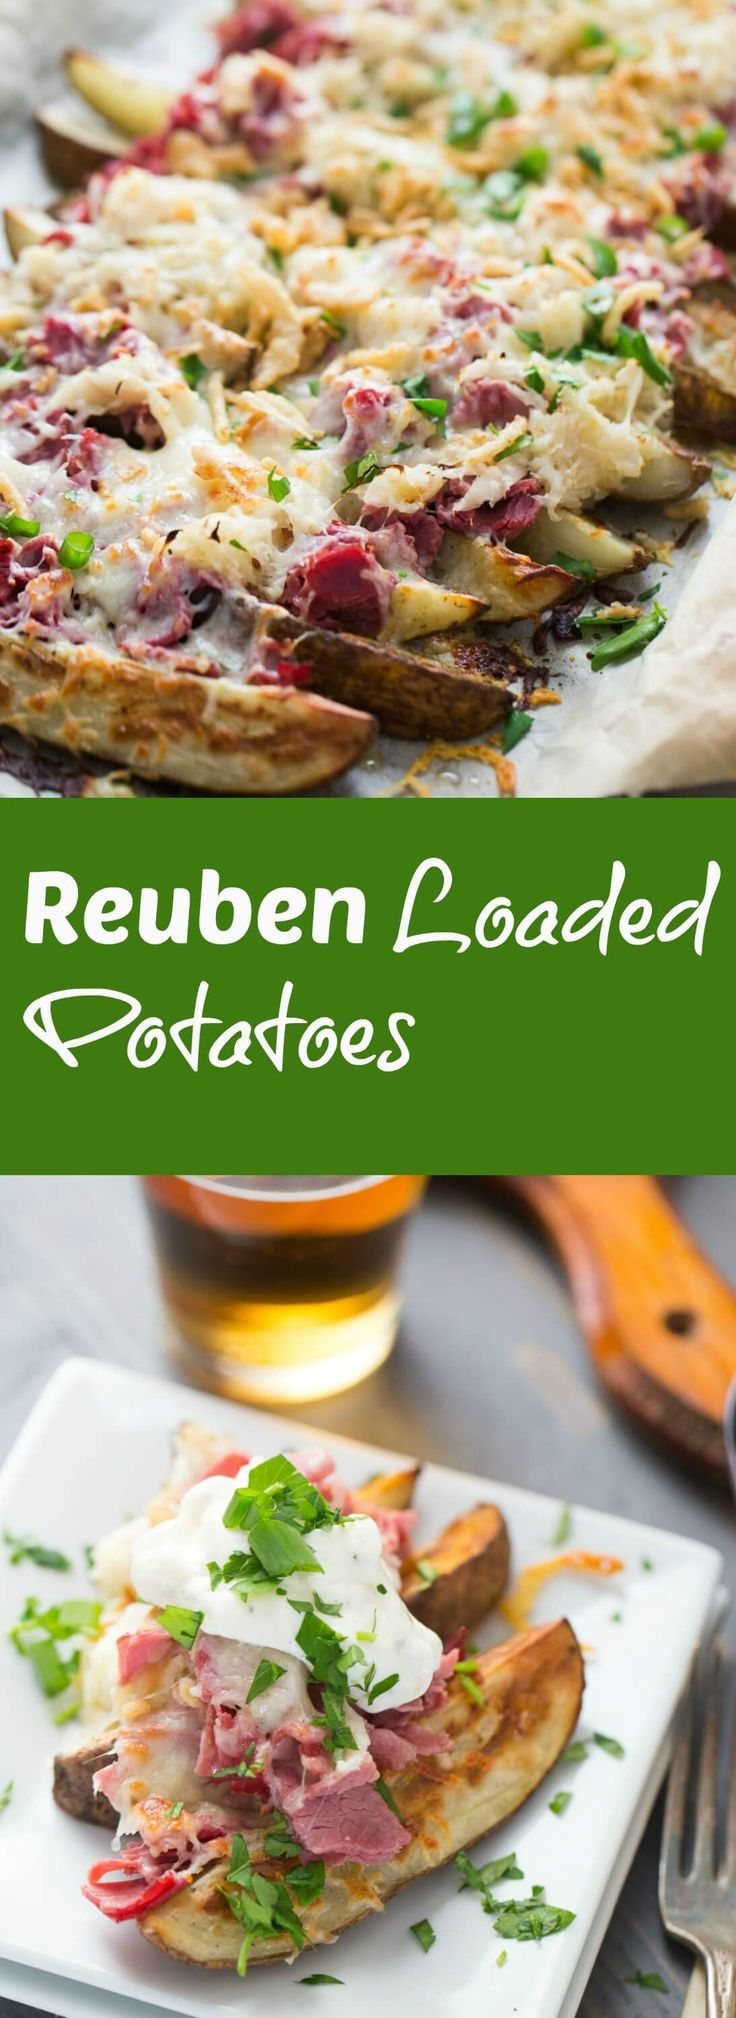 This loaded potatoes recipe is so good! Classic Reuben ingredients are a piled high on top of crispy potato wedges! All that you need is a cold pint of beer on the side! lemonsforlulu.com via @Lemonsforlulu